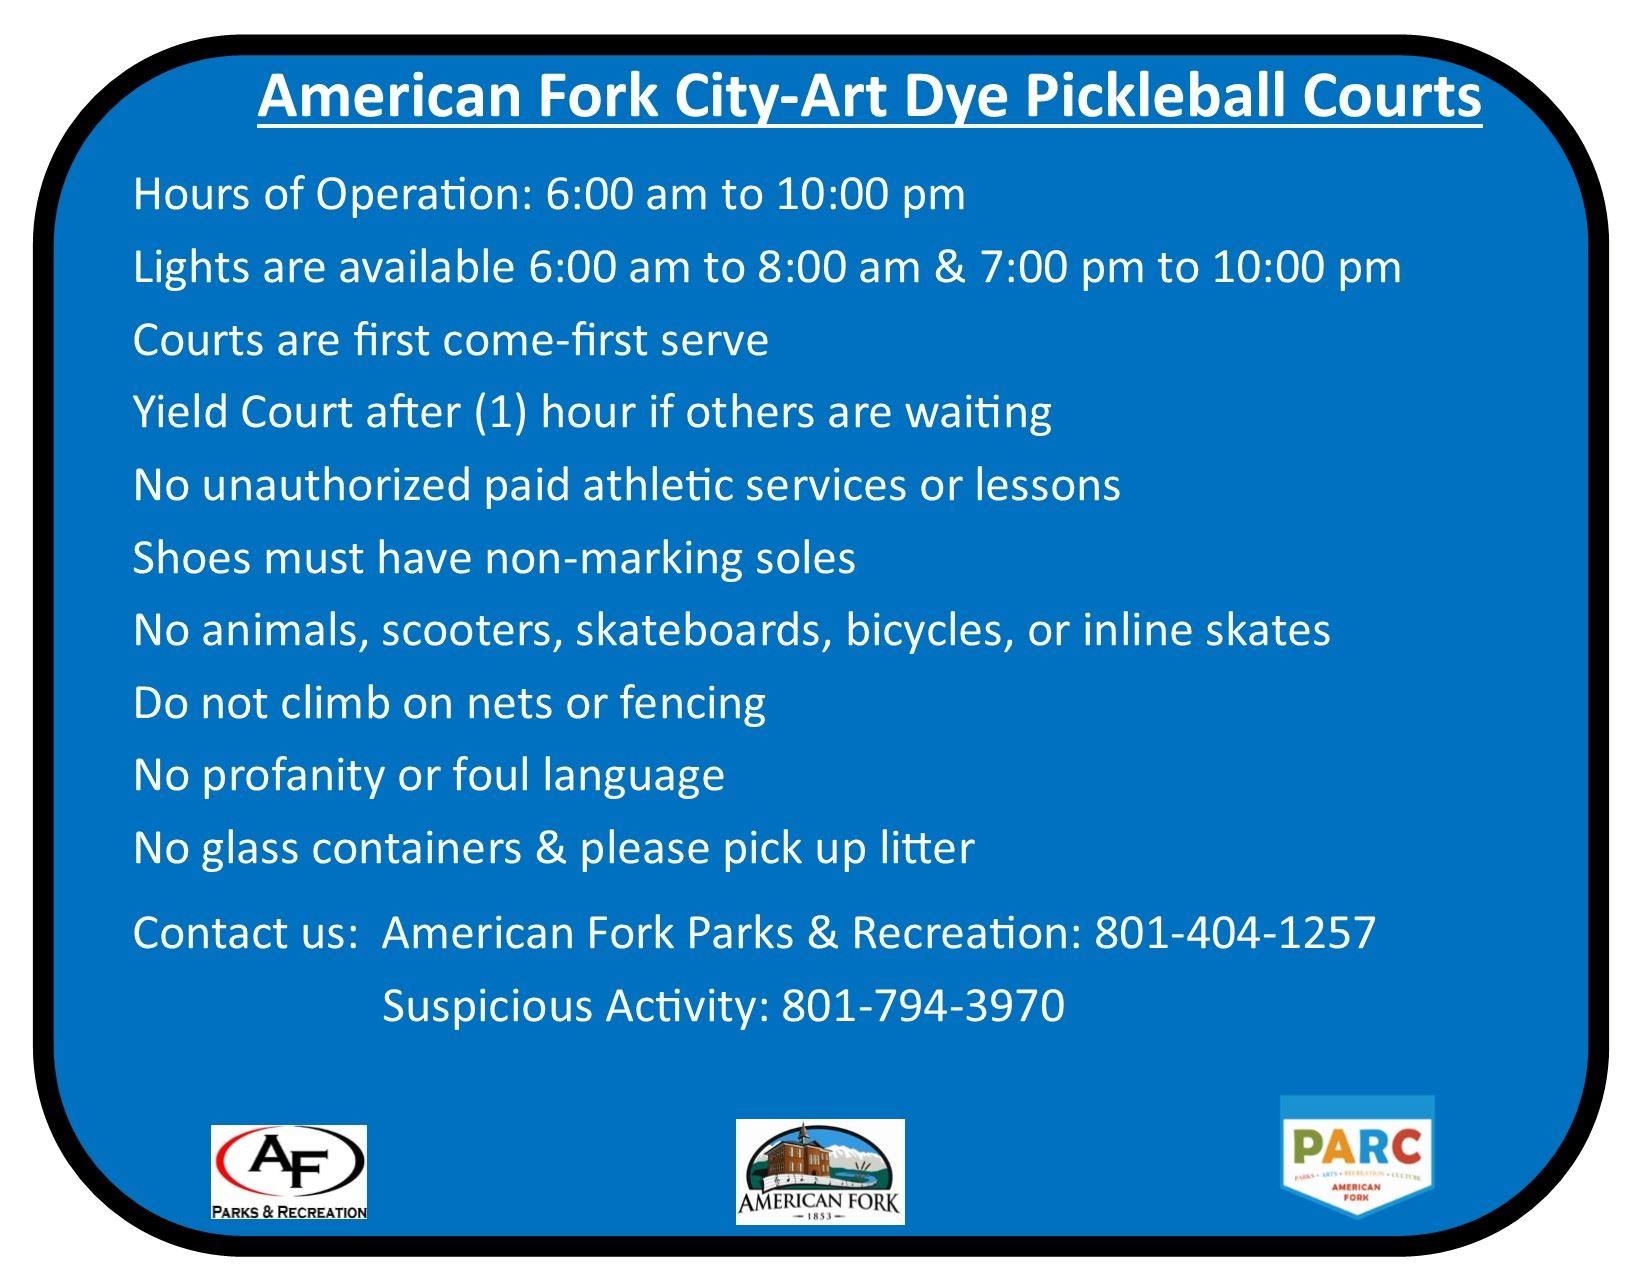 AF City Pickleball Rules